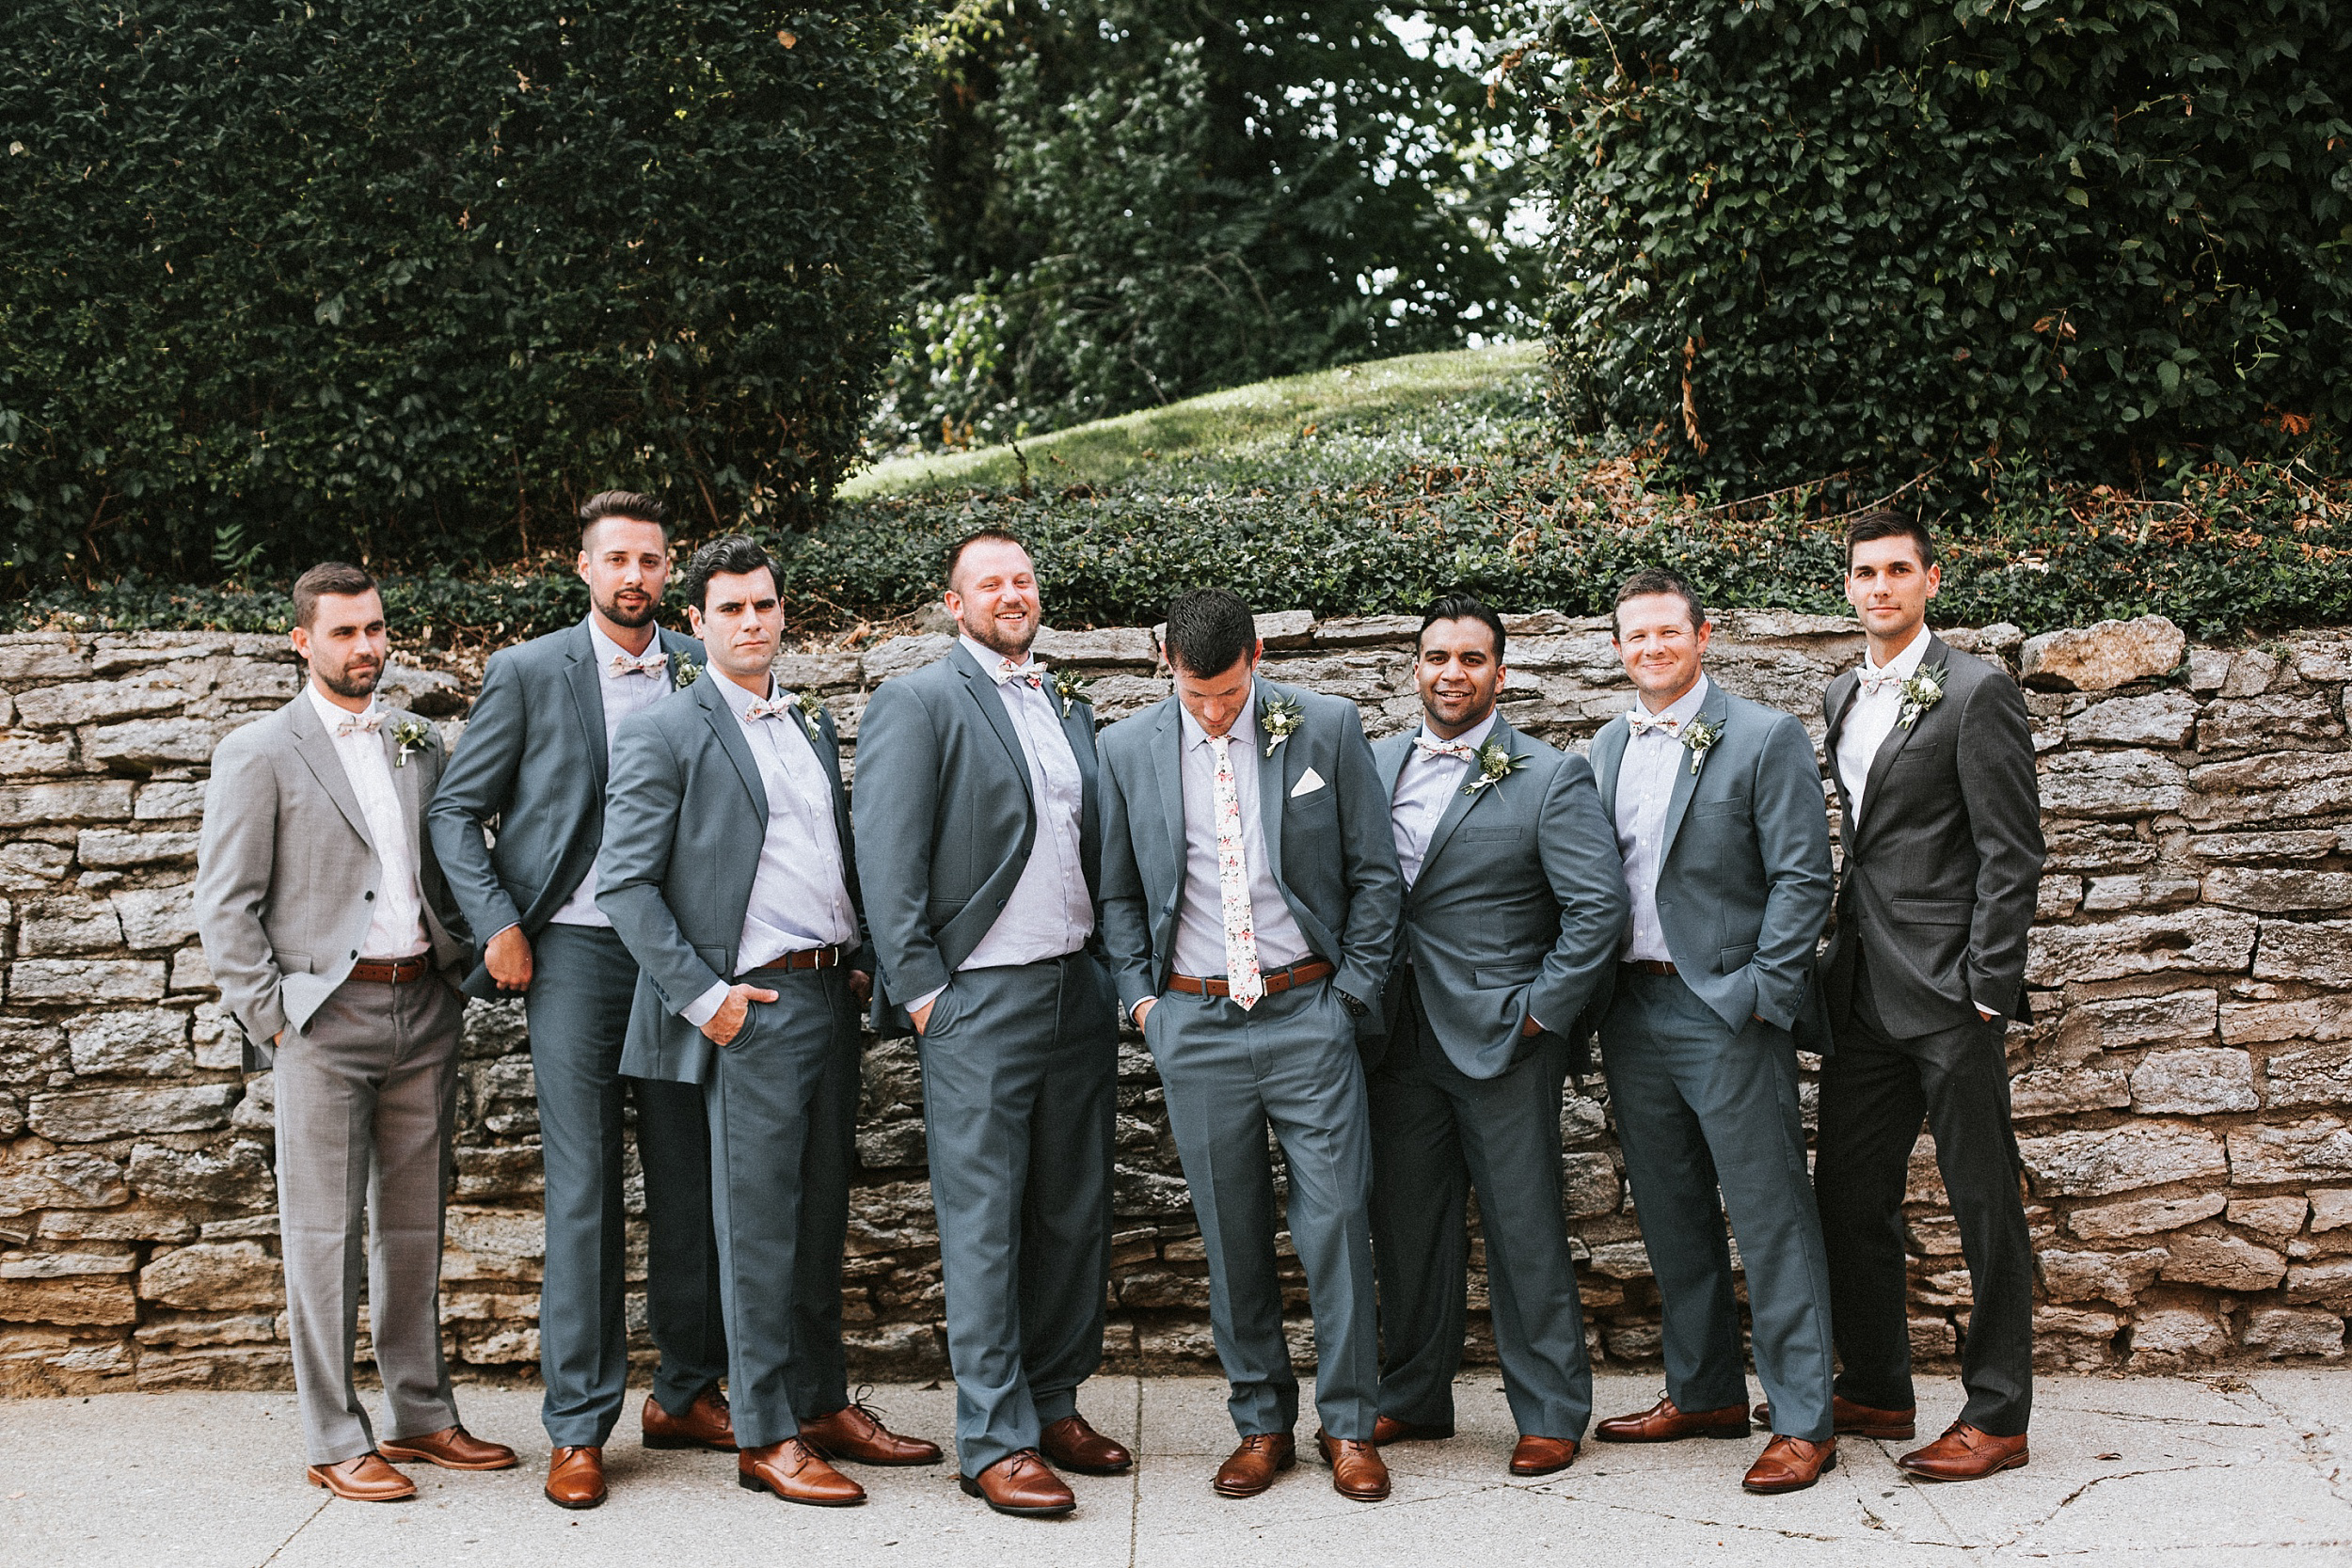 Brooke Townsend Photography - Cincinnati Wedding Photographer (67 of 170).jpg